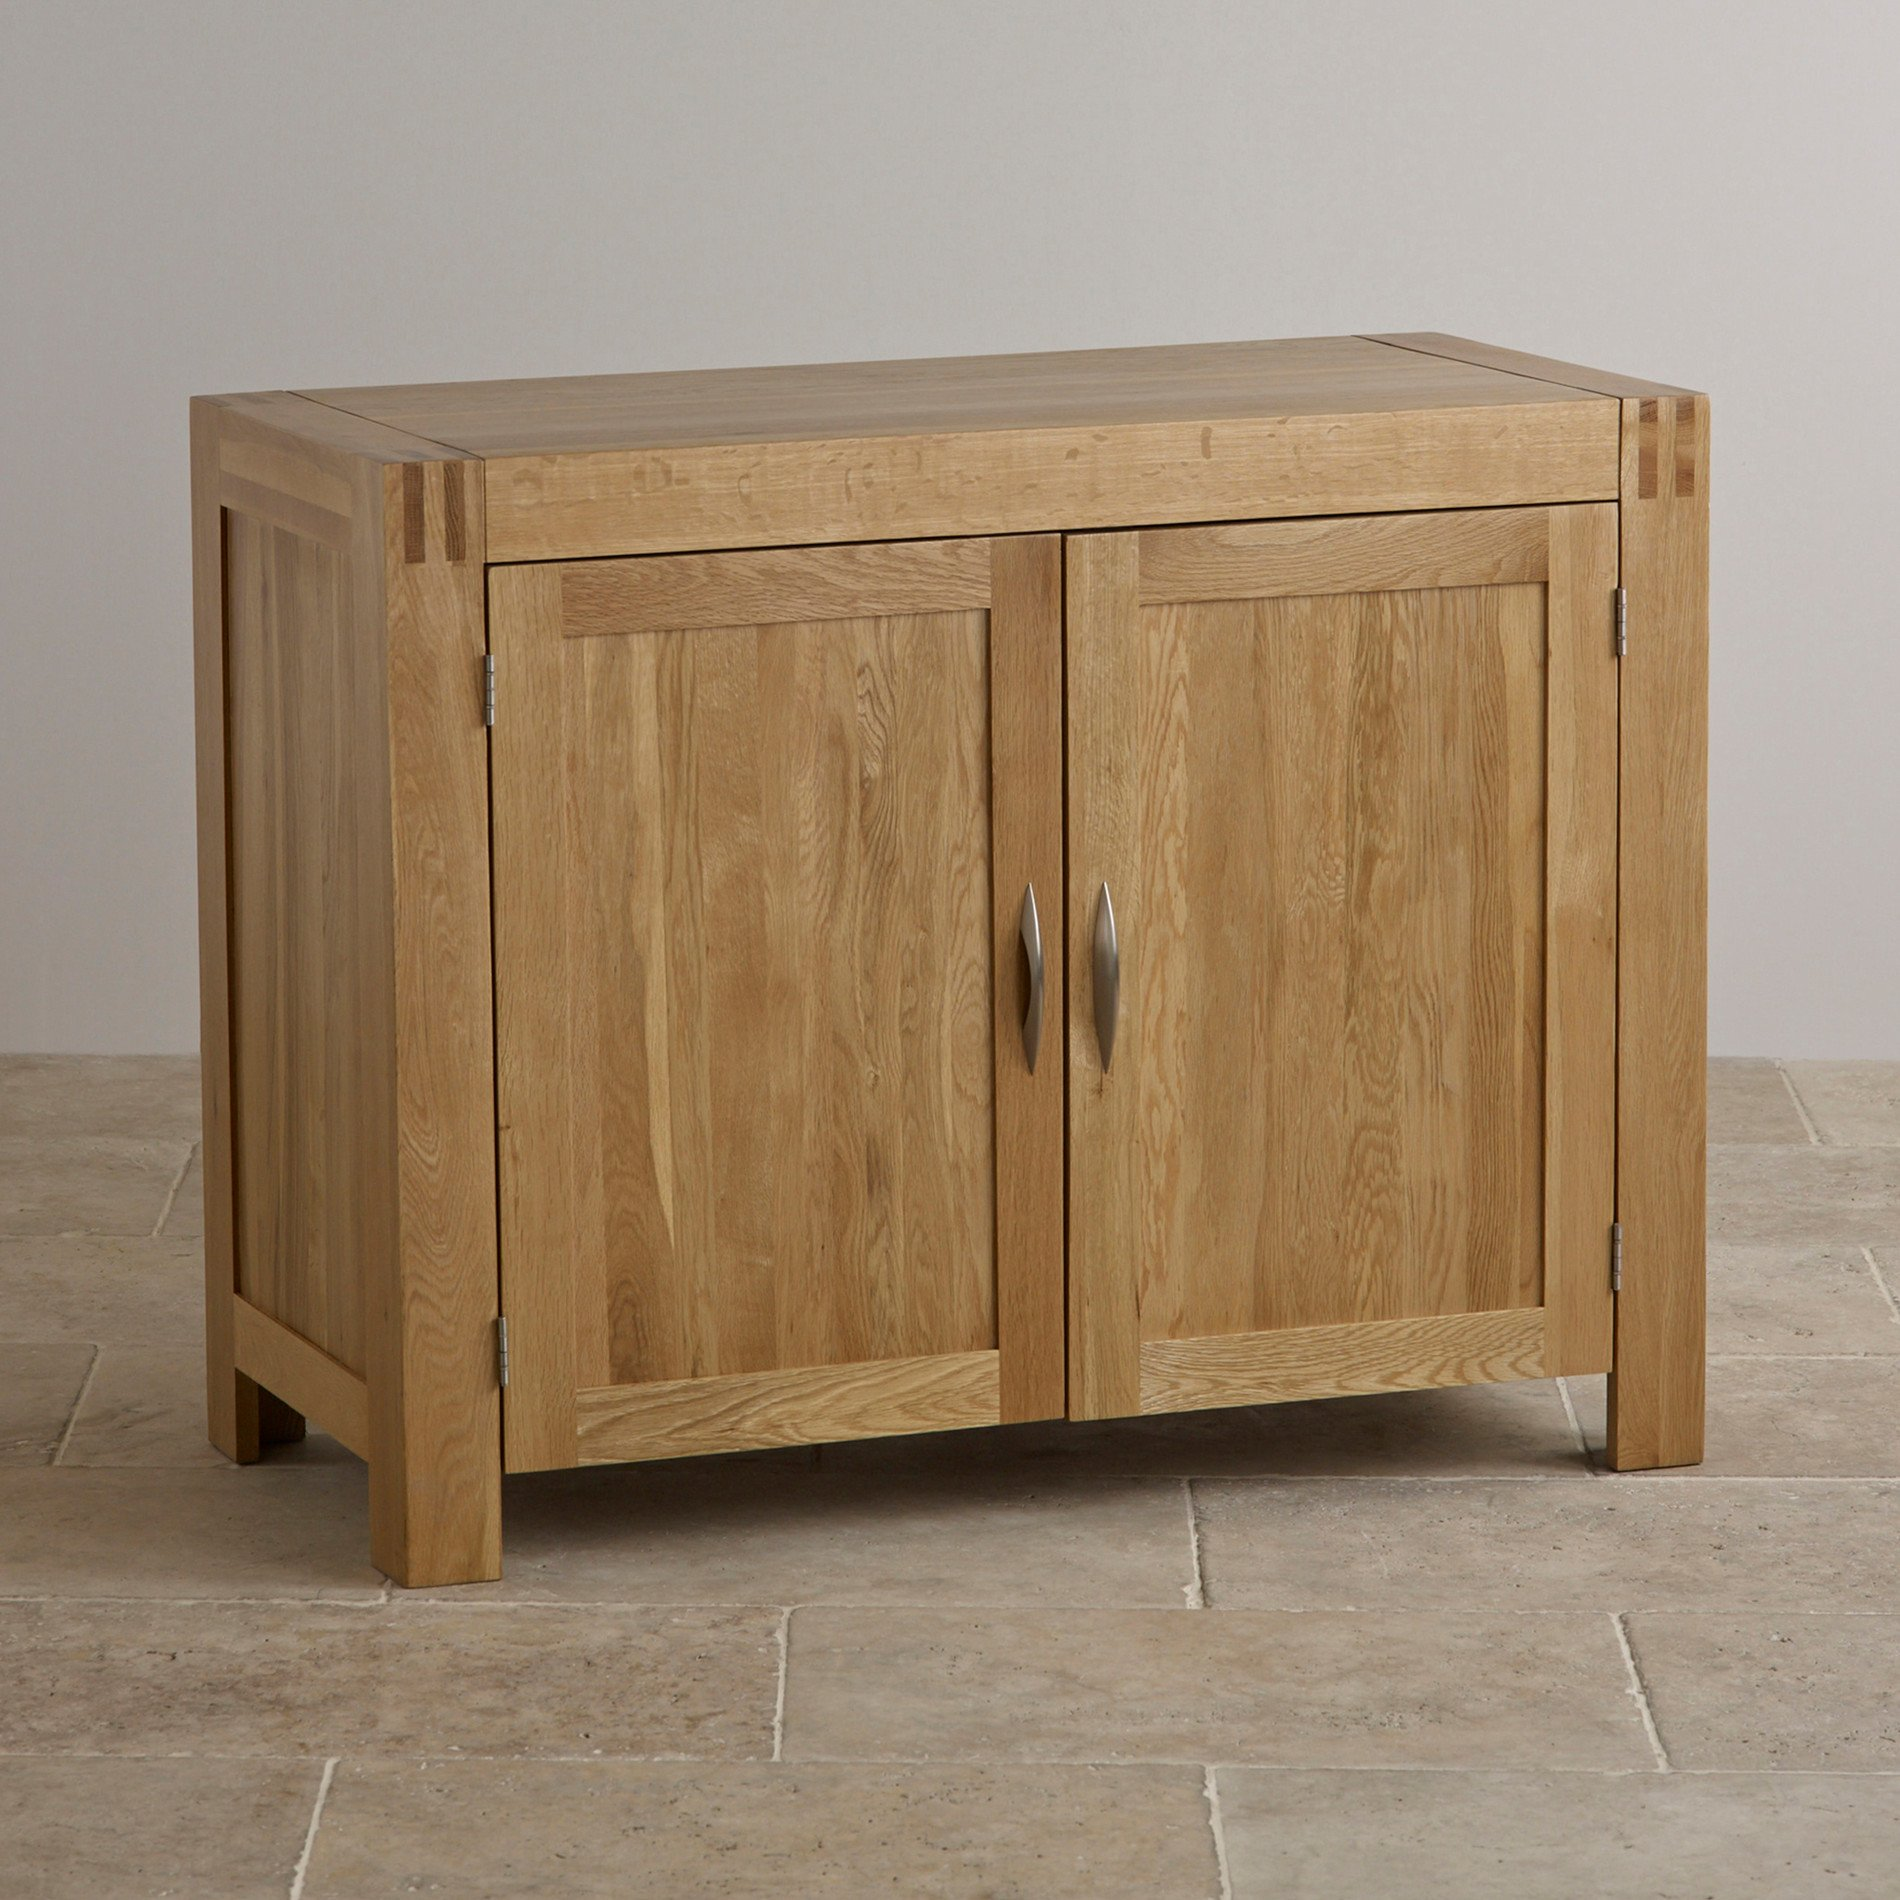 Alto natural solid oak small sideboard oak furniture land for Oak furniture land